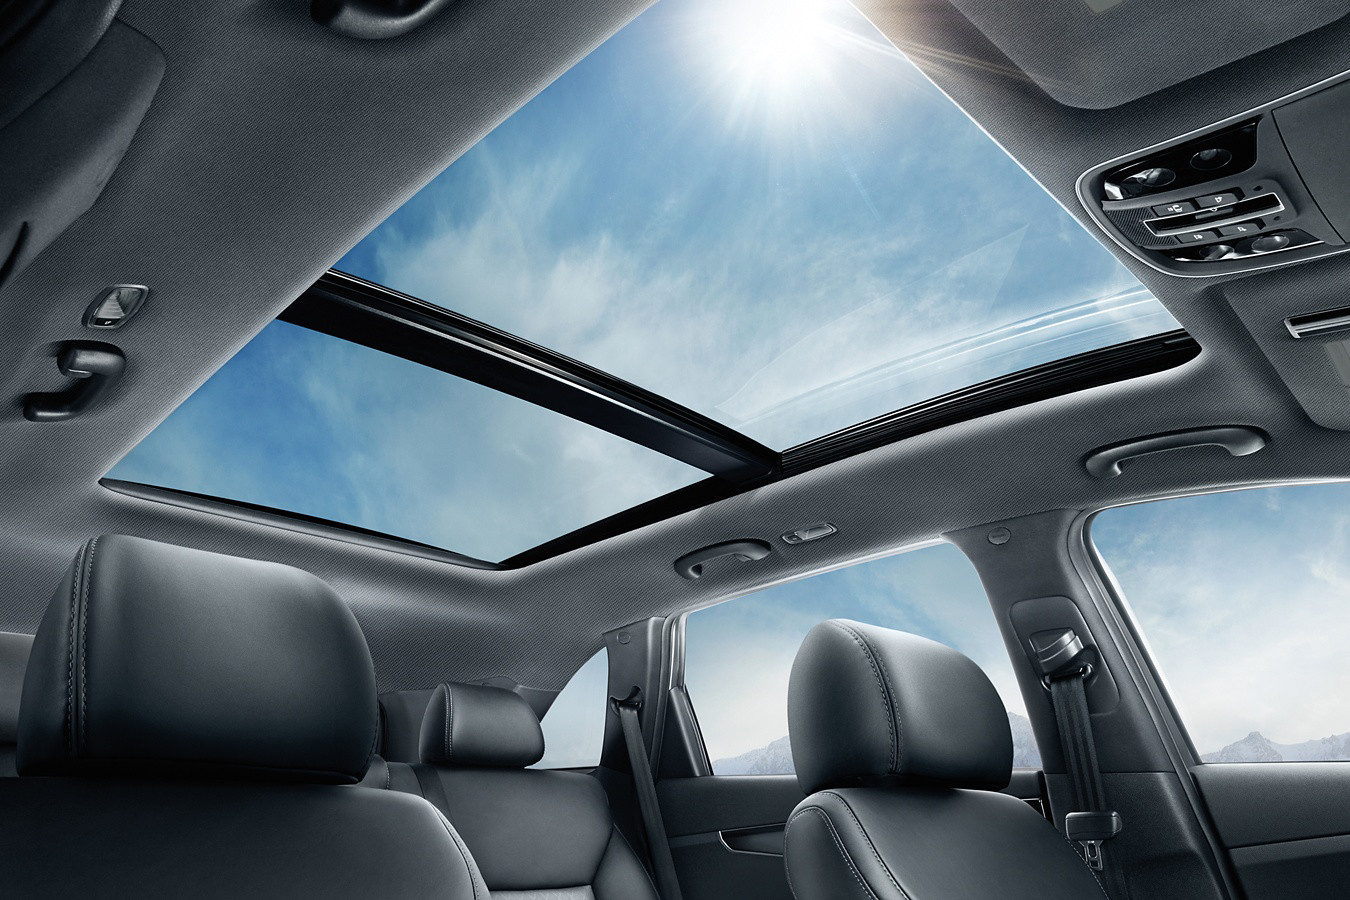 2019 Kia Sorento Sunroof